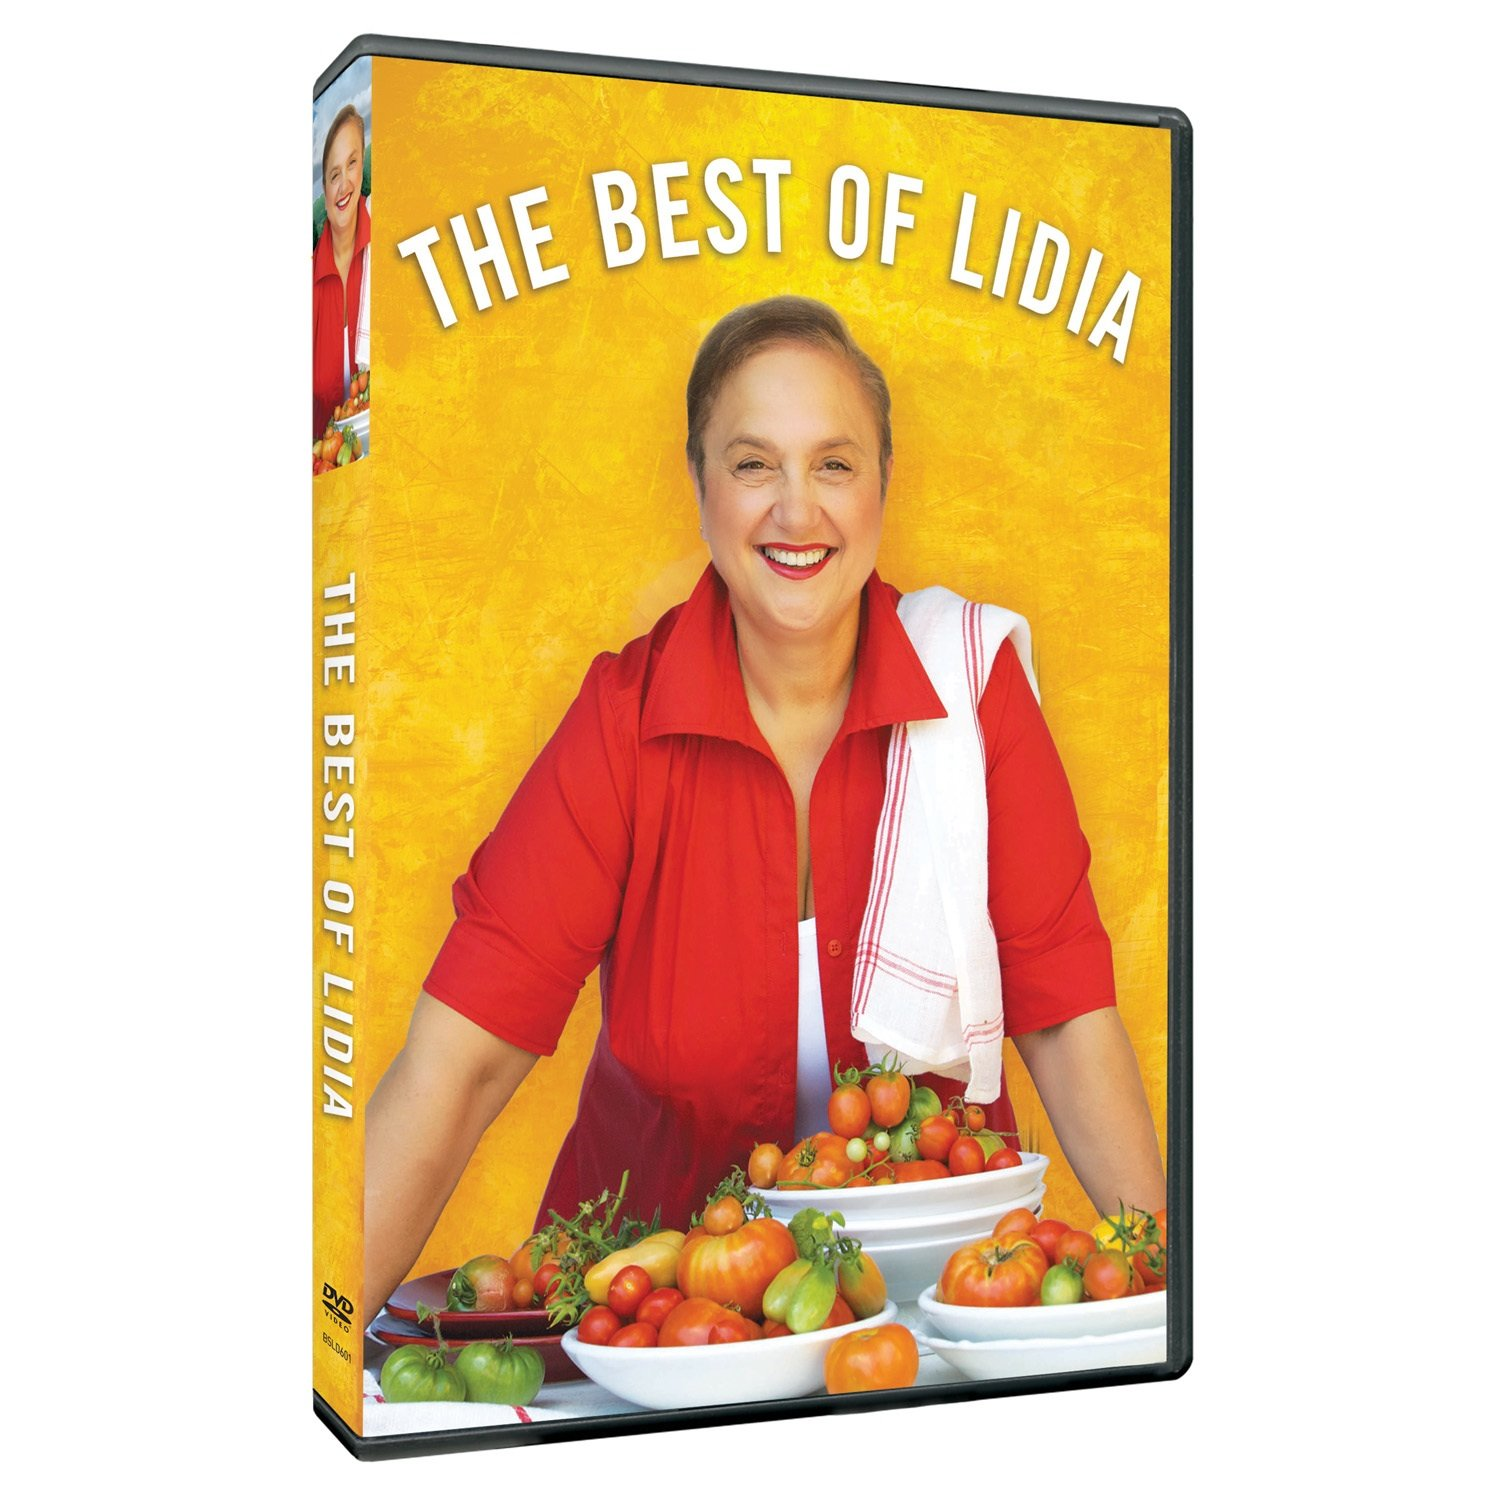 The Best of Lidia by PBS Video